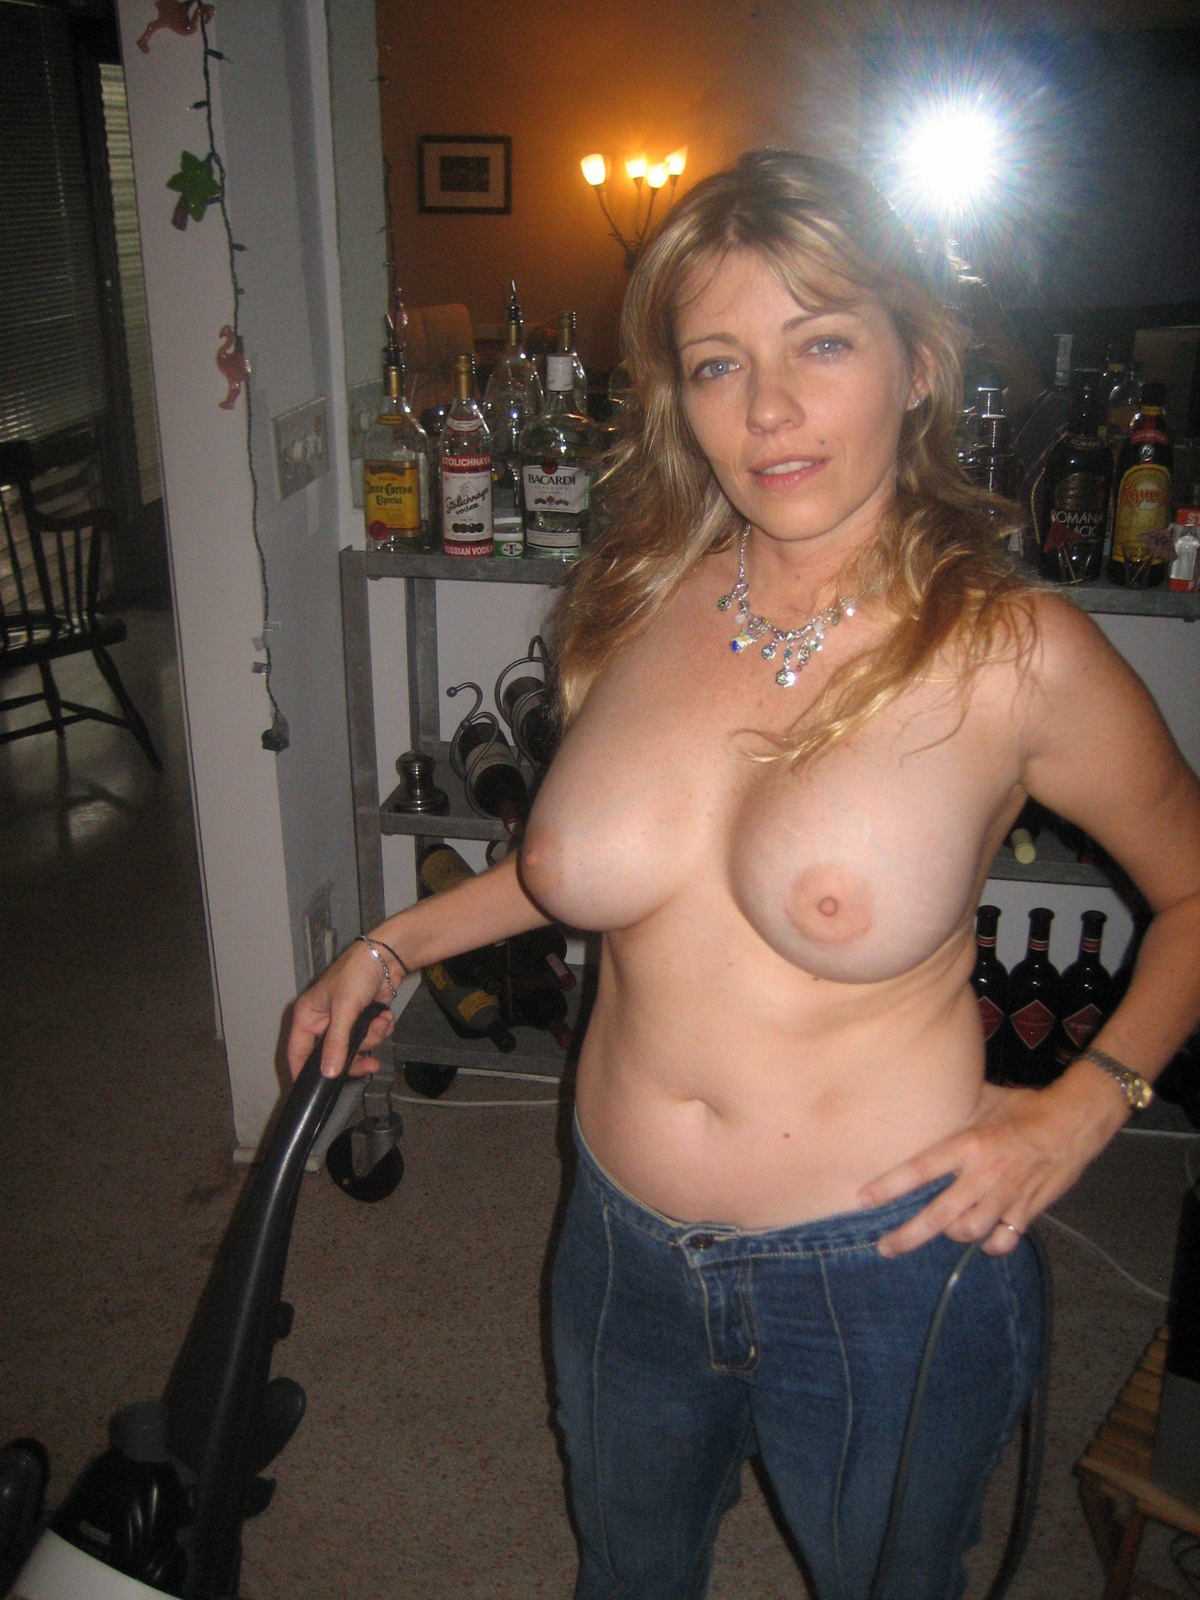 Amateur Milf with Big Round Boobs - picture 05